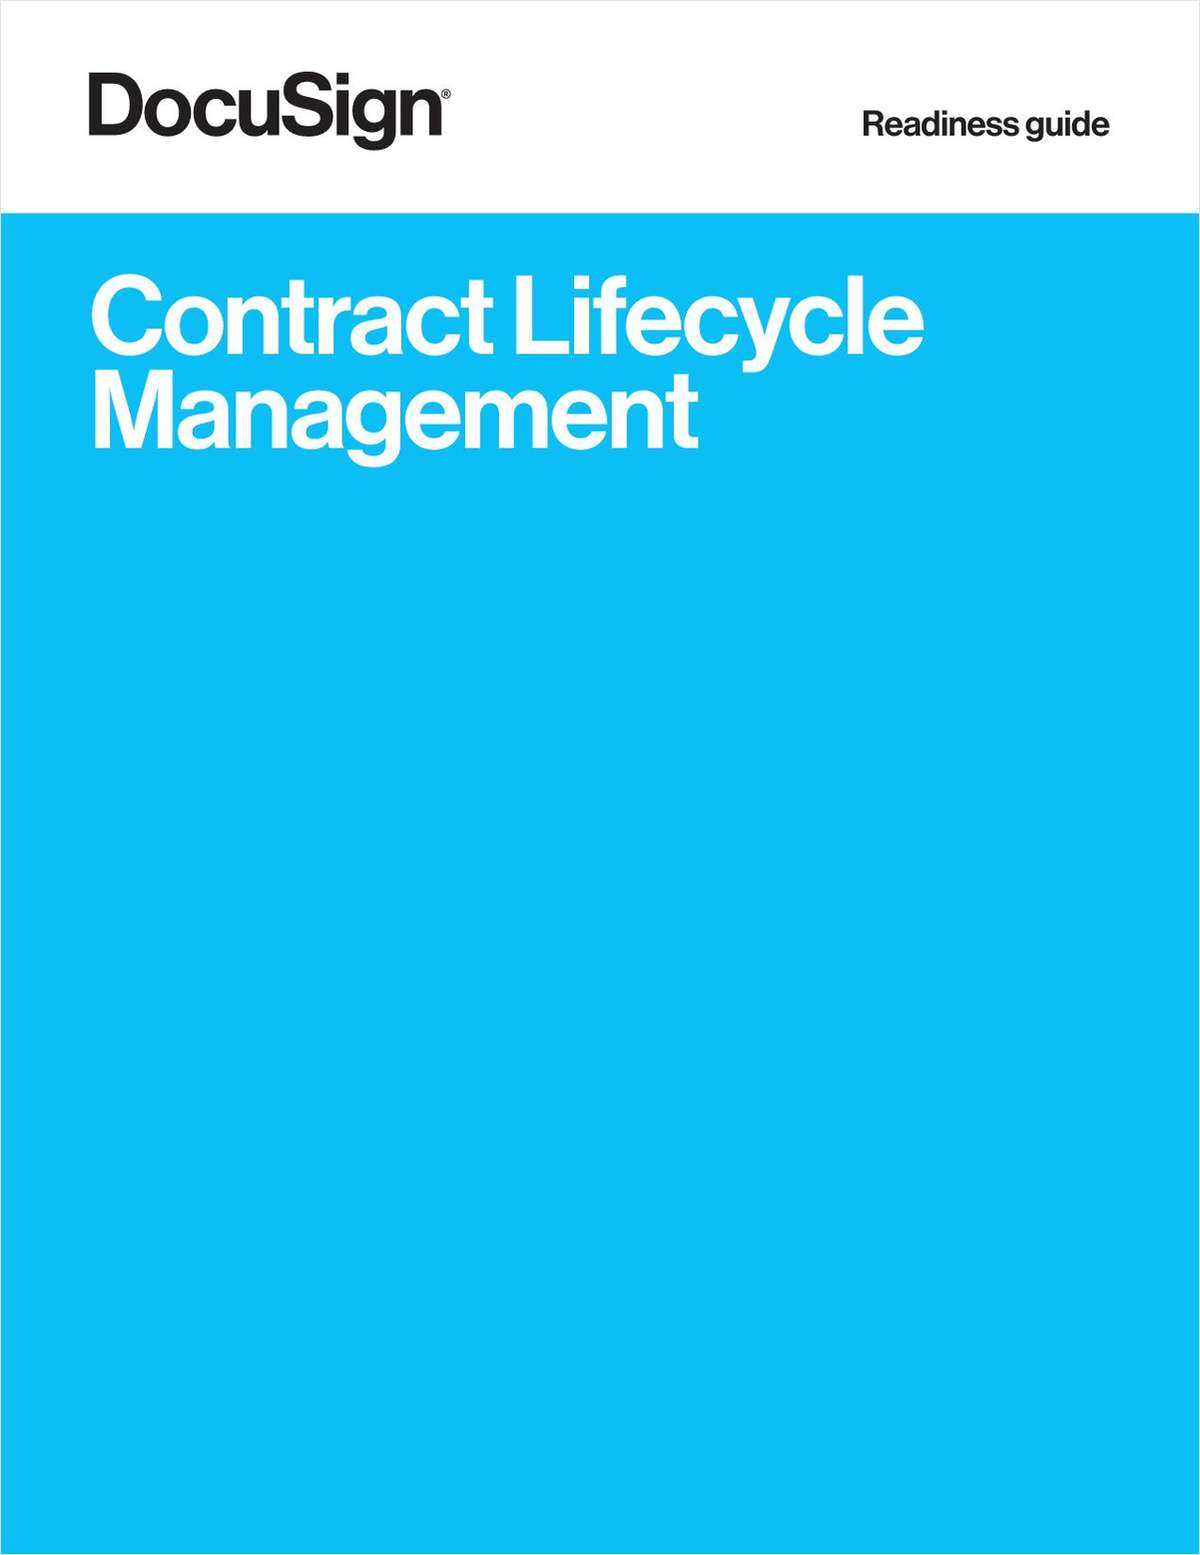 From contract templates and workflows to organization and rollout timelines, use this guide to ensure your company is prepared for a contract management solution.